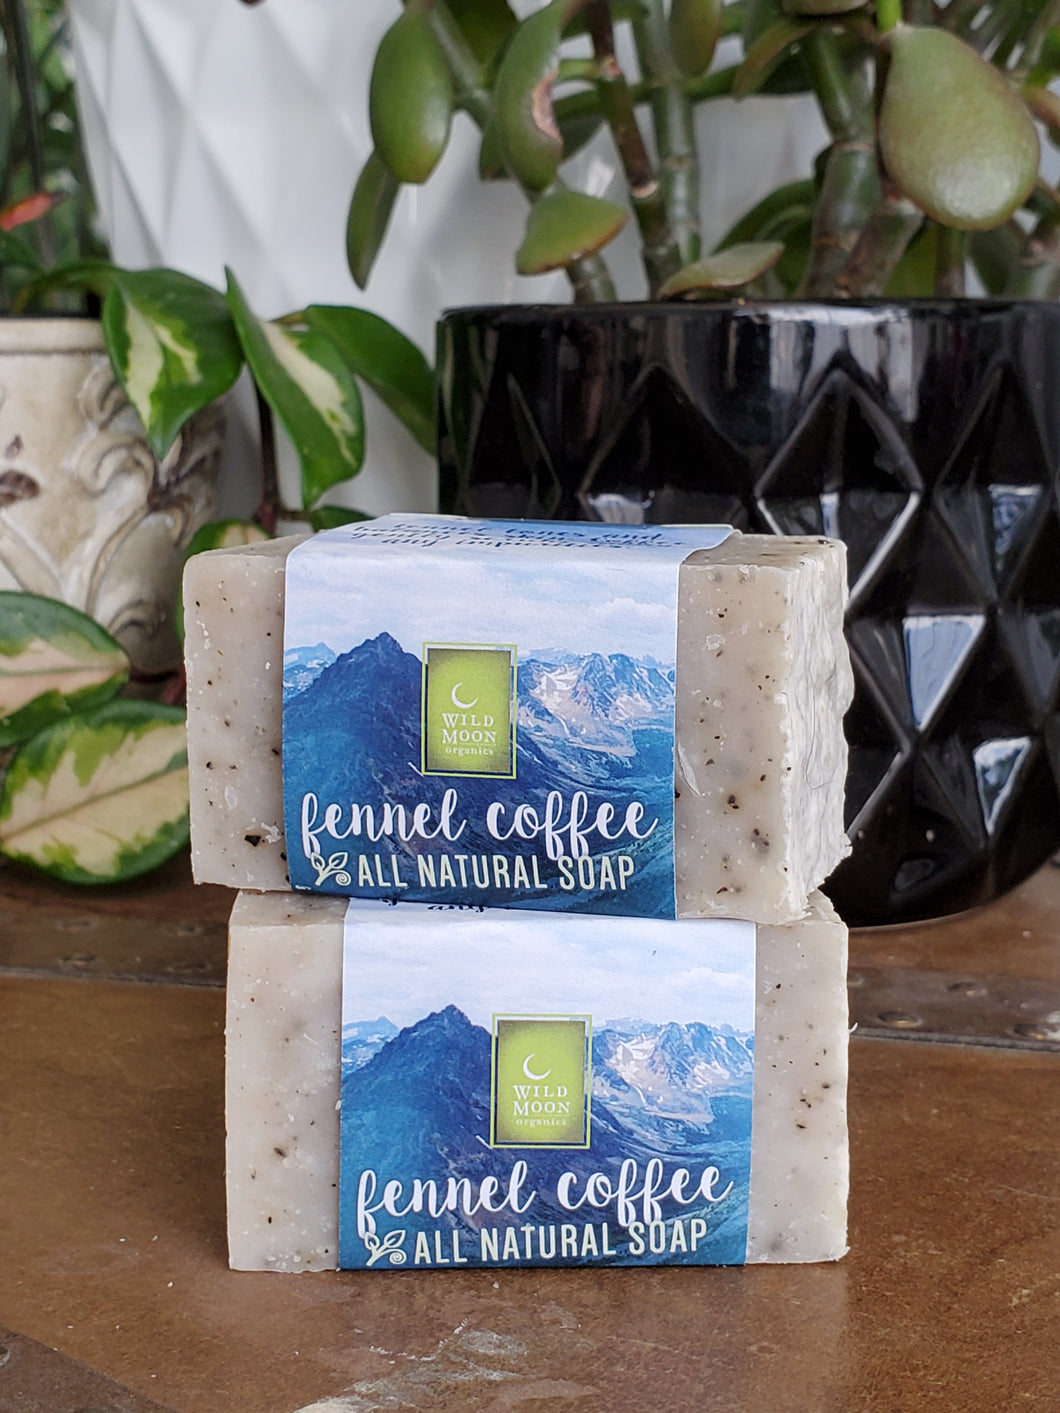 Fennel Coffee - All Natural soap